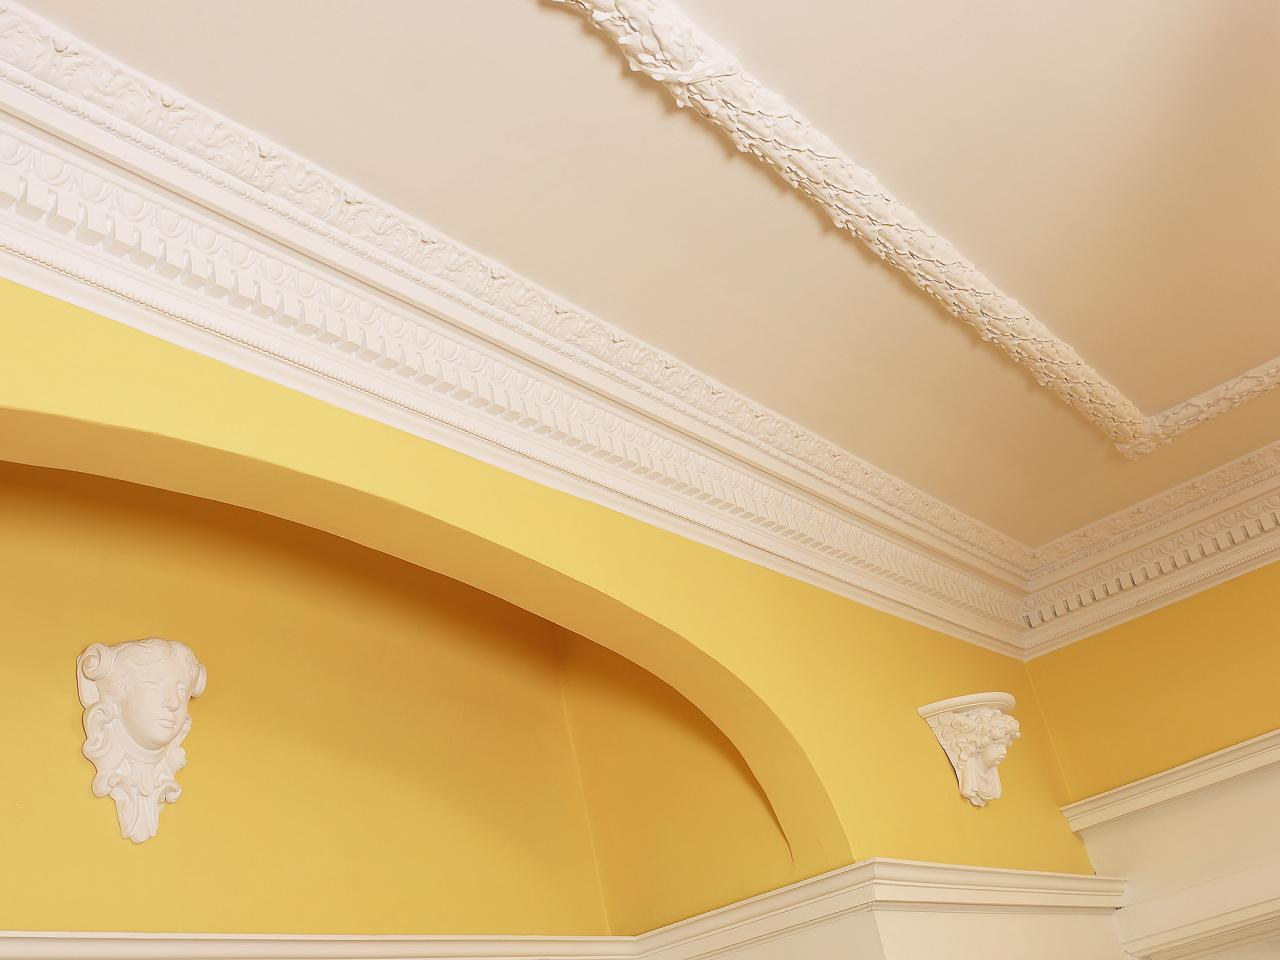 How to Repair Crown Molding | HGTV